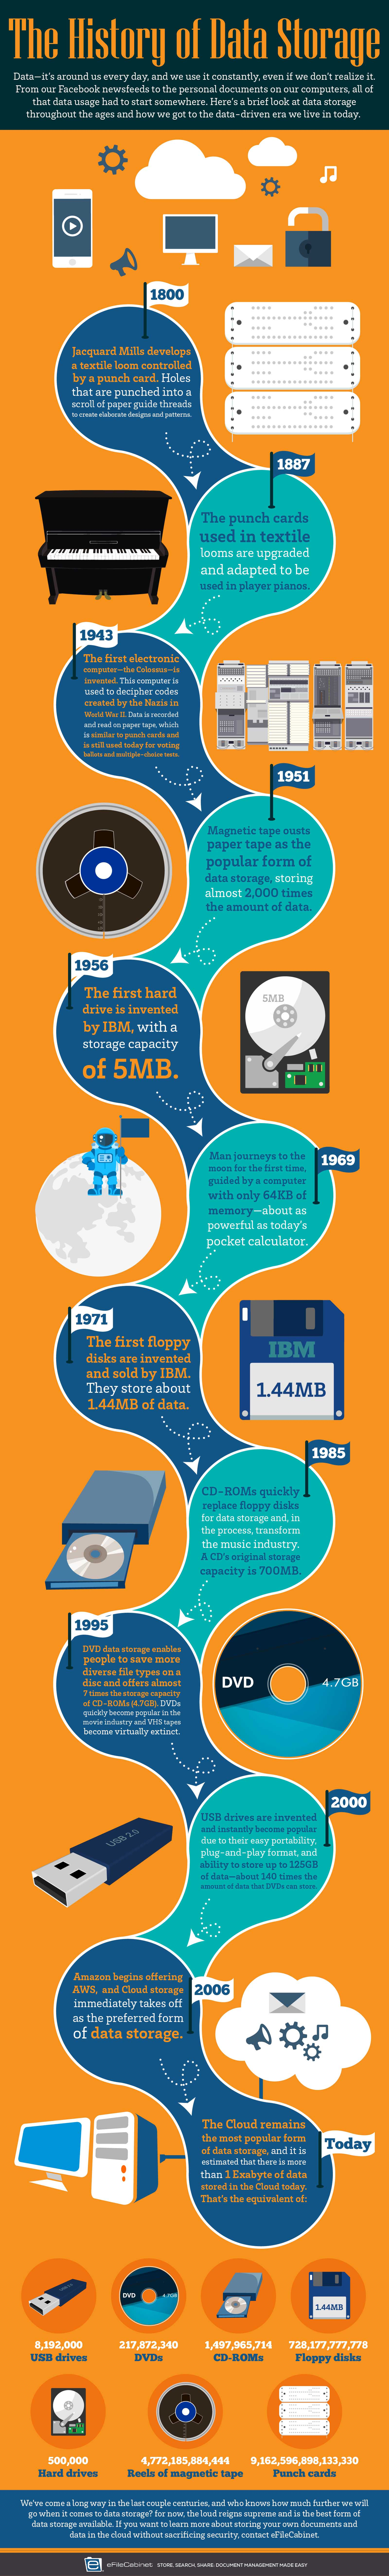 history of data storage infographic